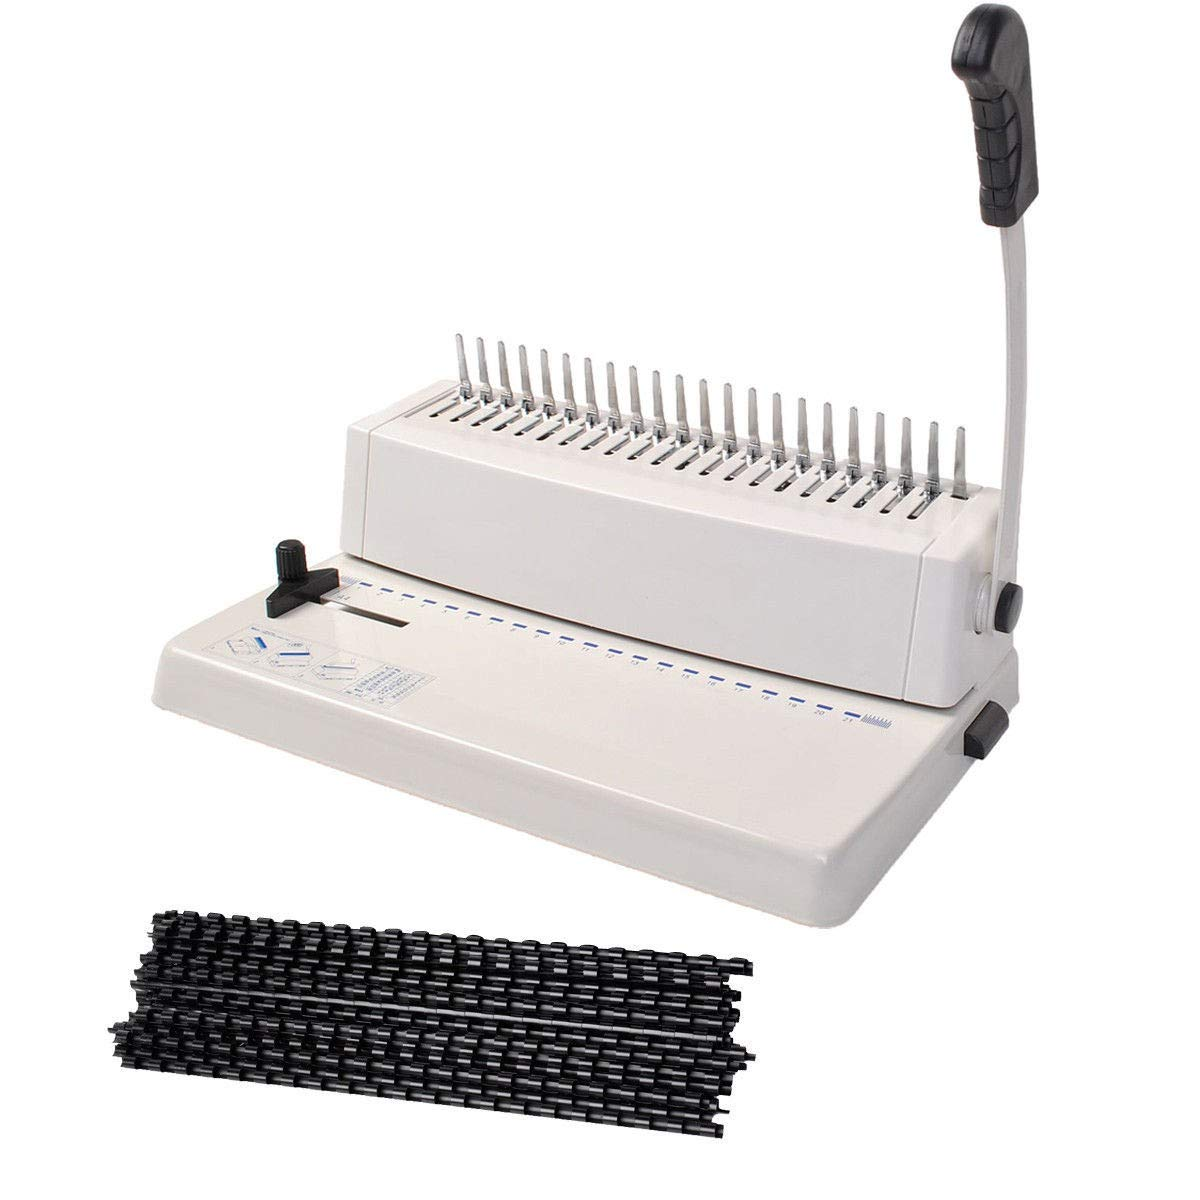 21-Hole 250 Sheets Paper Comb Punch Binder Binding Machine Scrapbook w/200 Combs Apontus